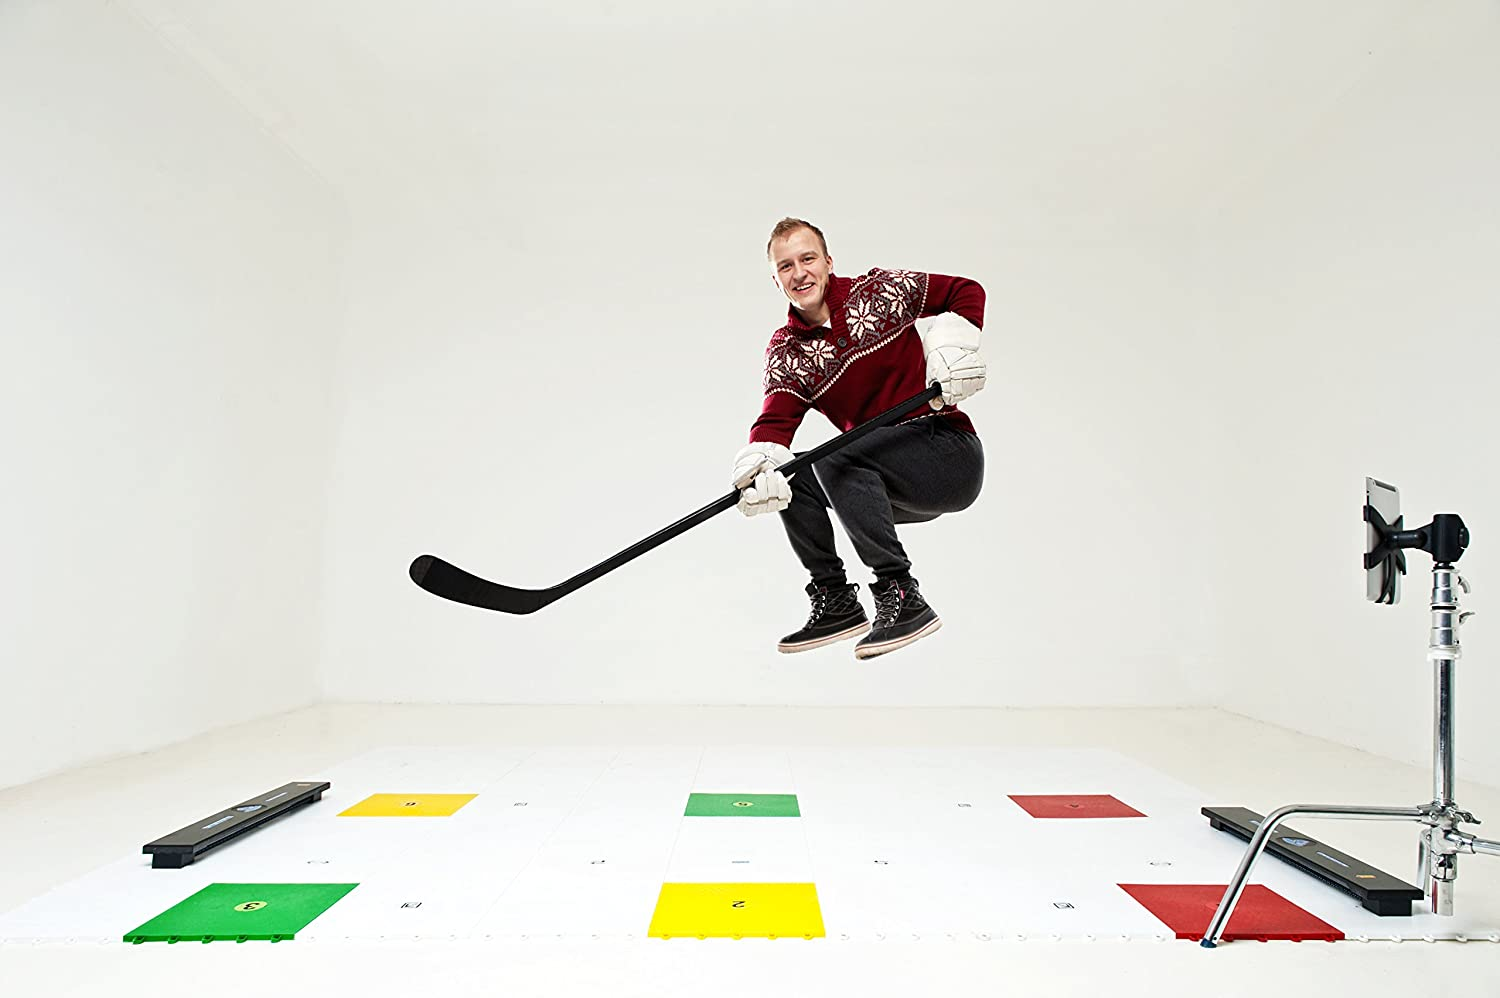 Hockey Tiles The Top Option For Off-Ice Practice